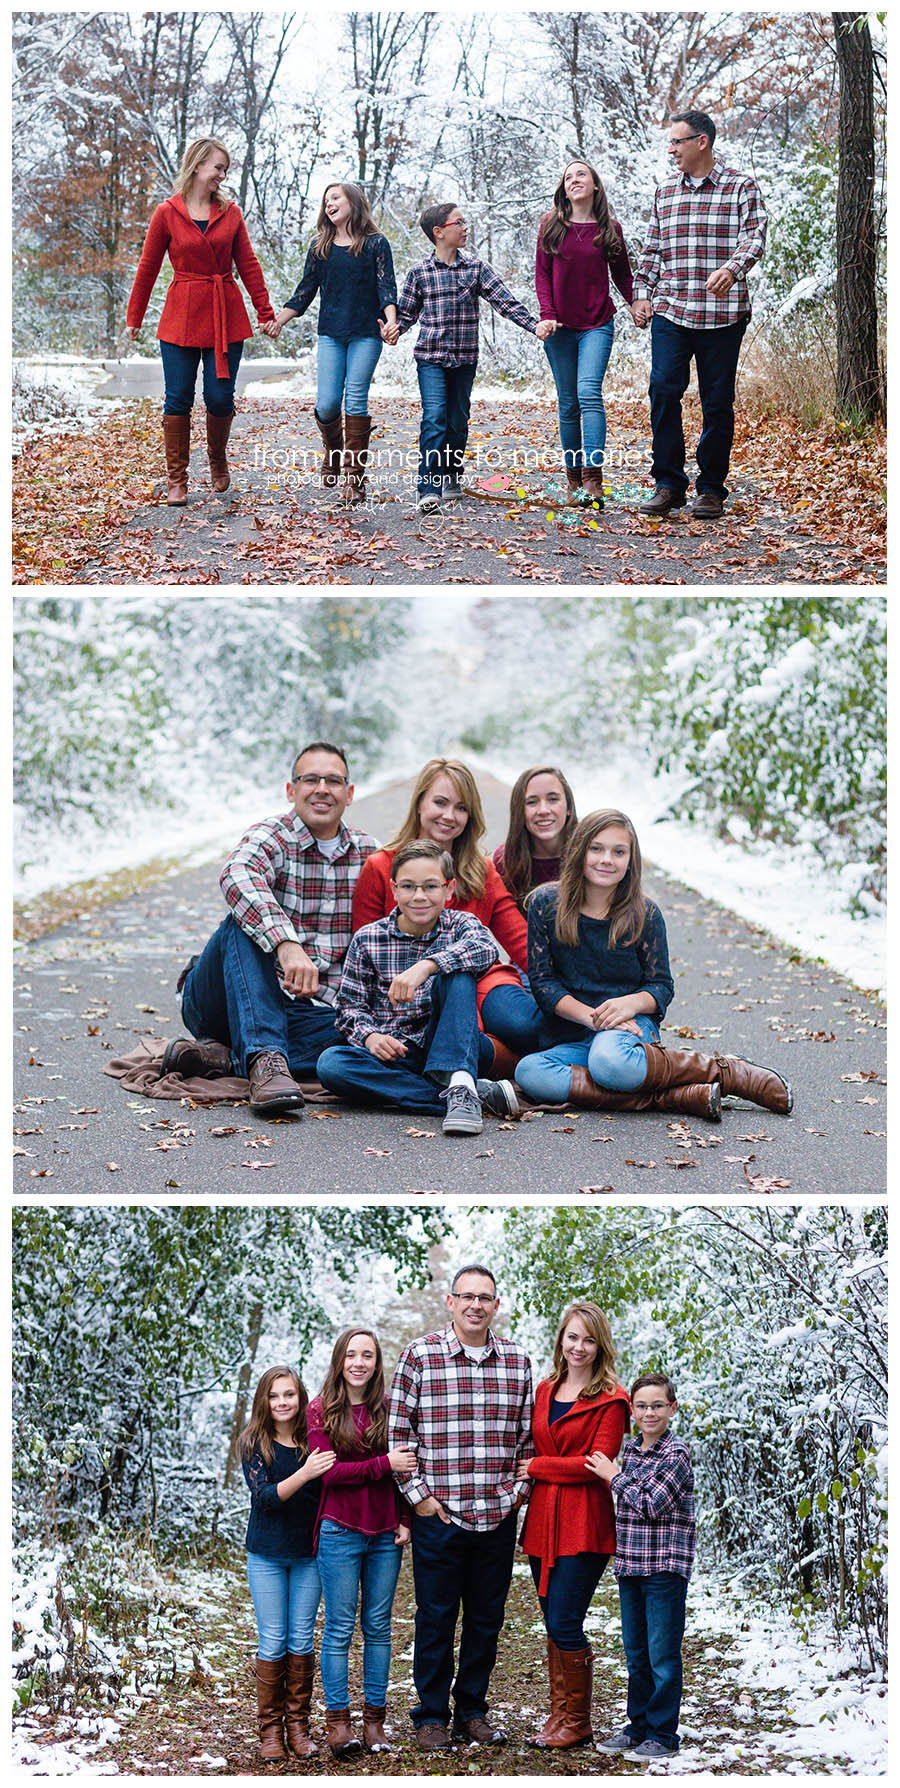 winter family pictures after the snowfall at woodland trails park in elk river, minnesota